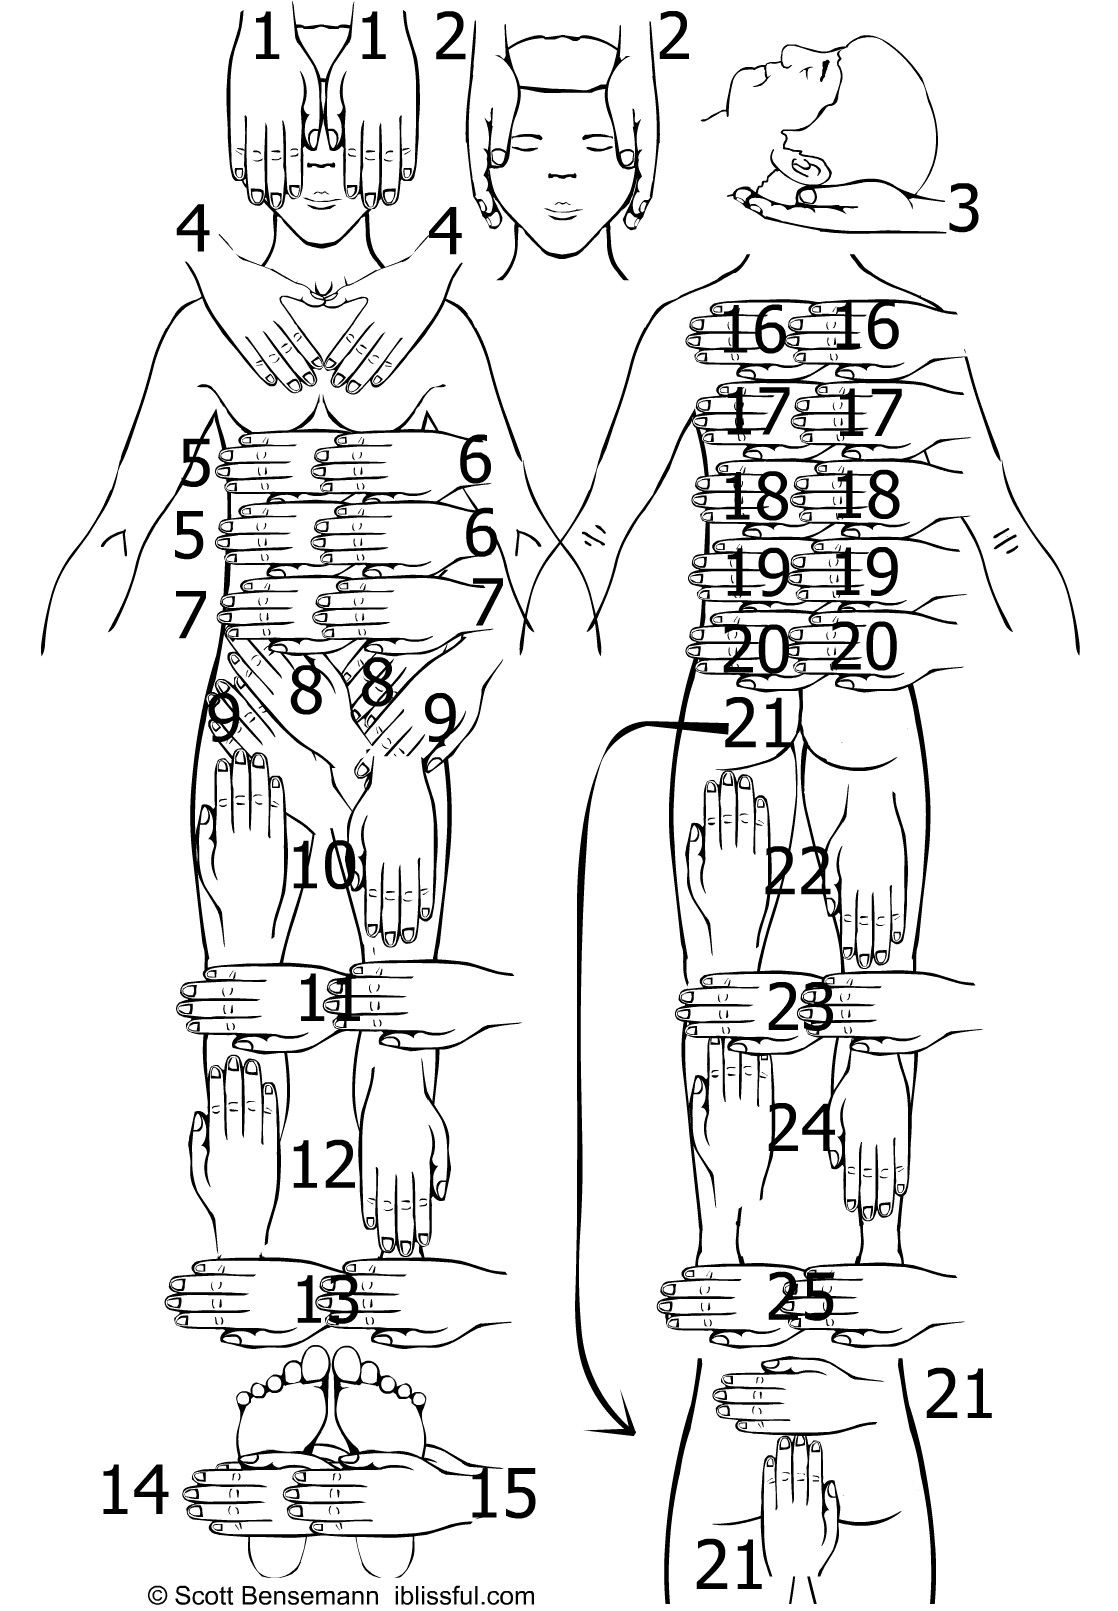 Image detail for #Reiki 1 hand position guide sheet